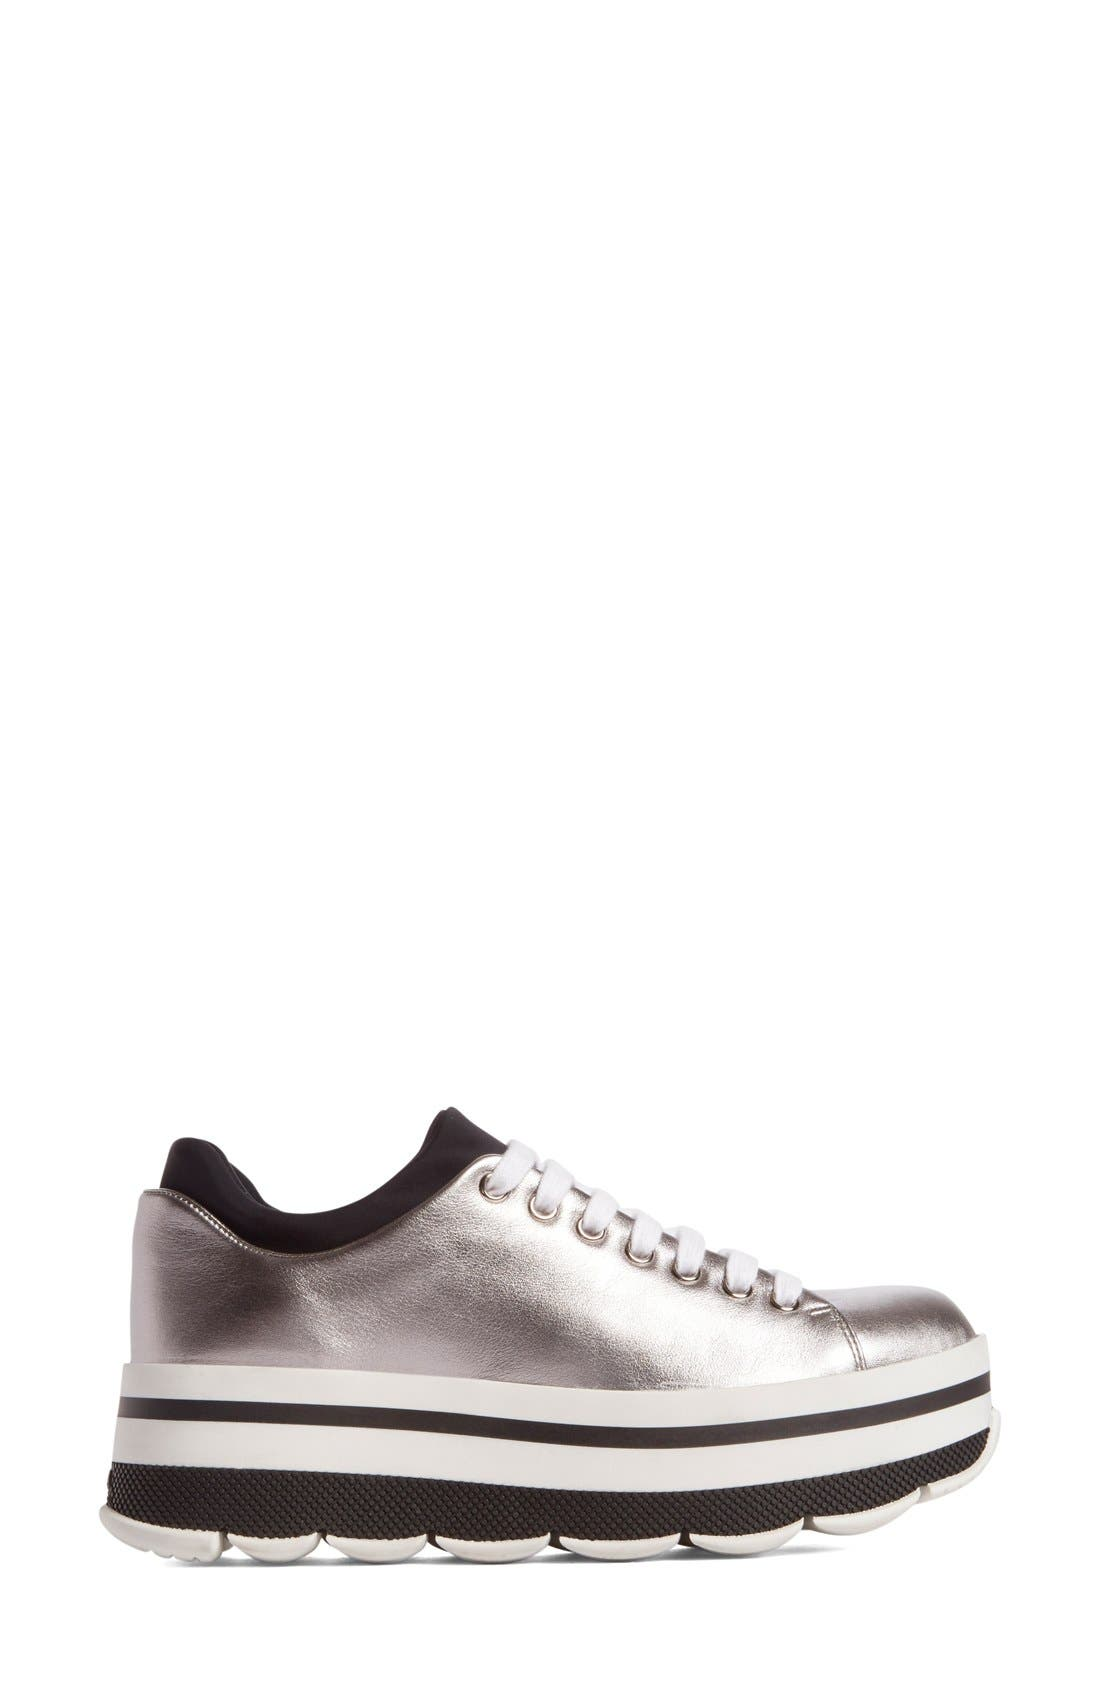 Platform Sneaker,                             Alternate thumbnail 3, color,                             Silver Leather